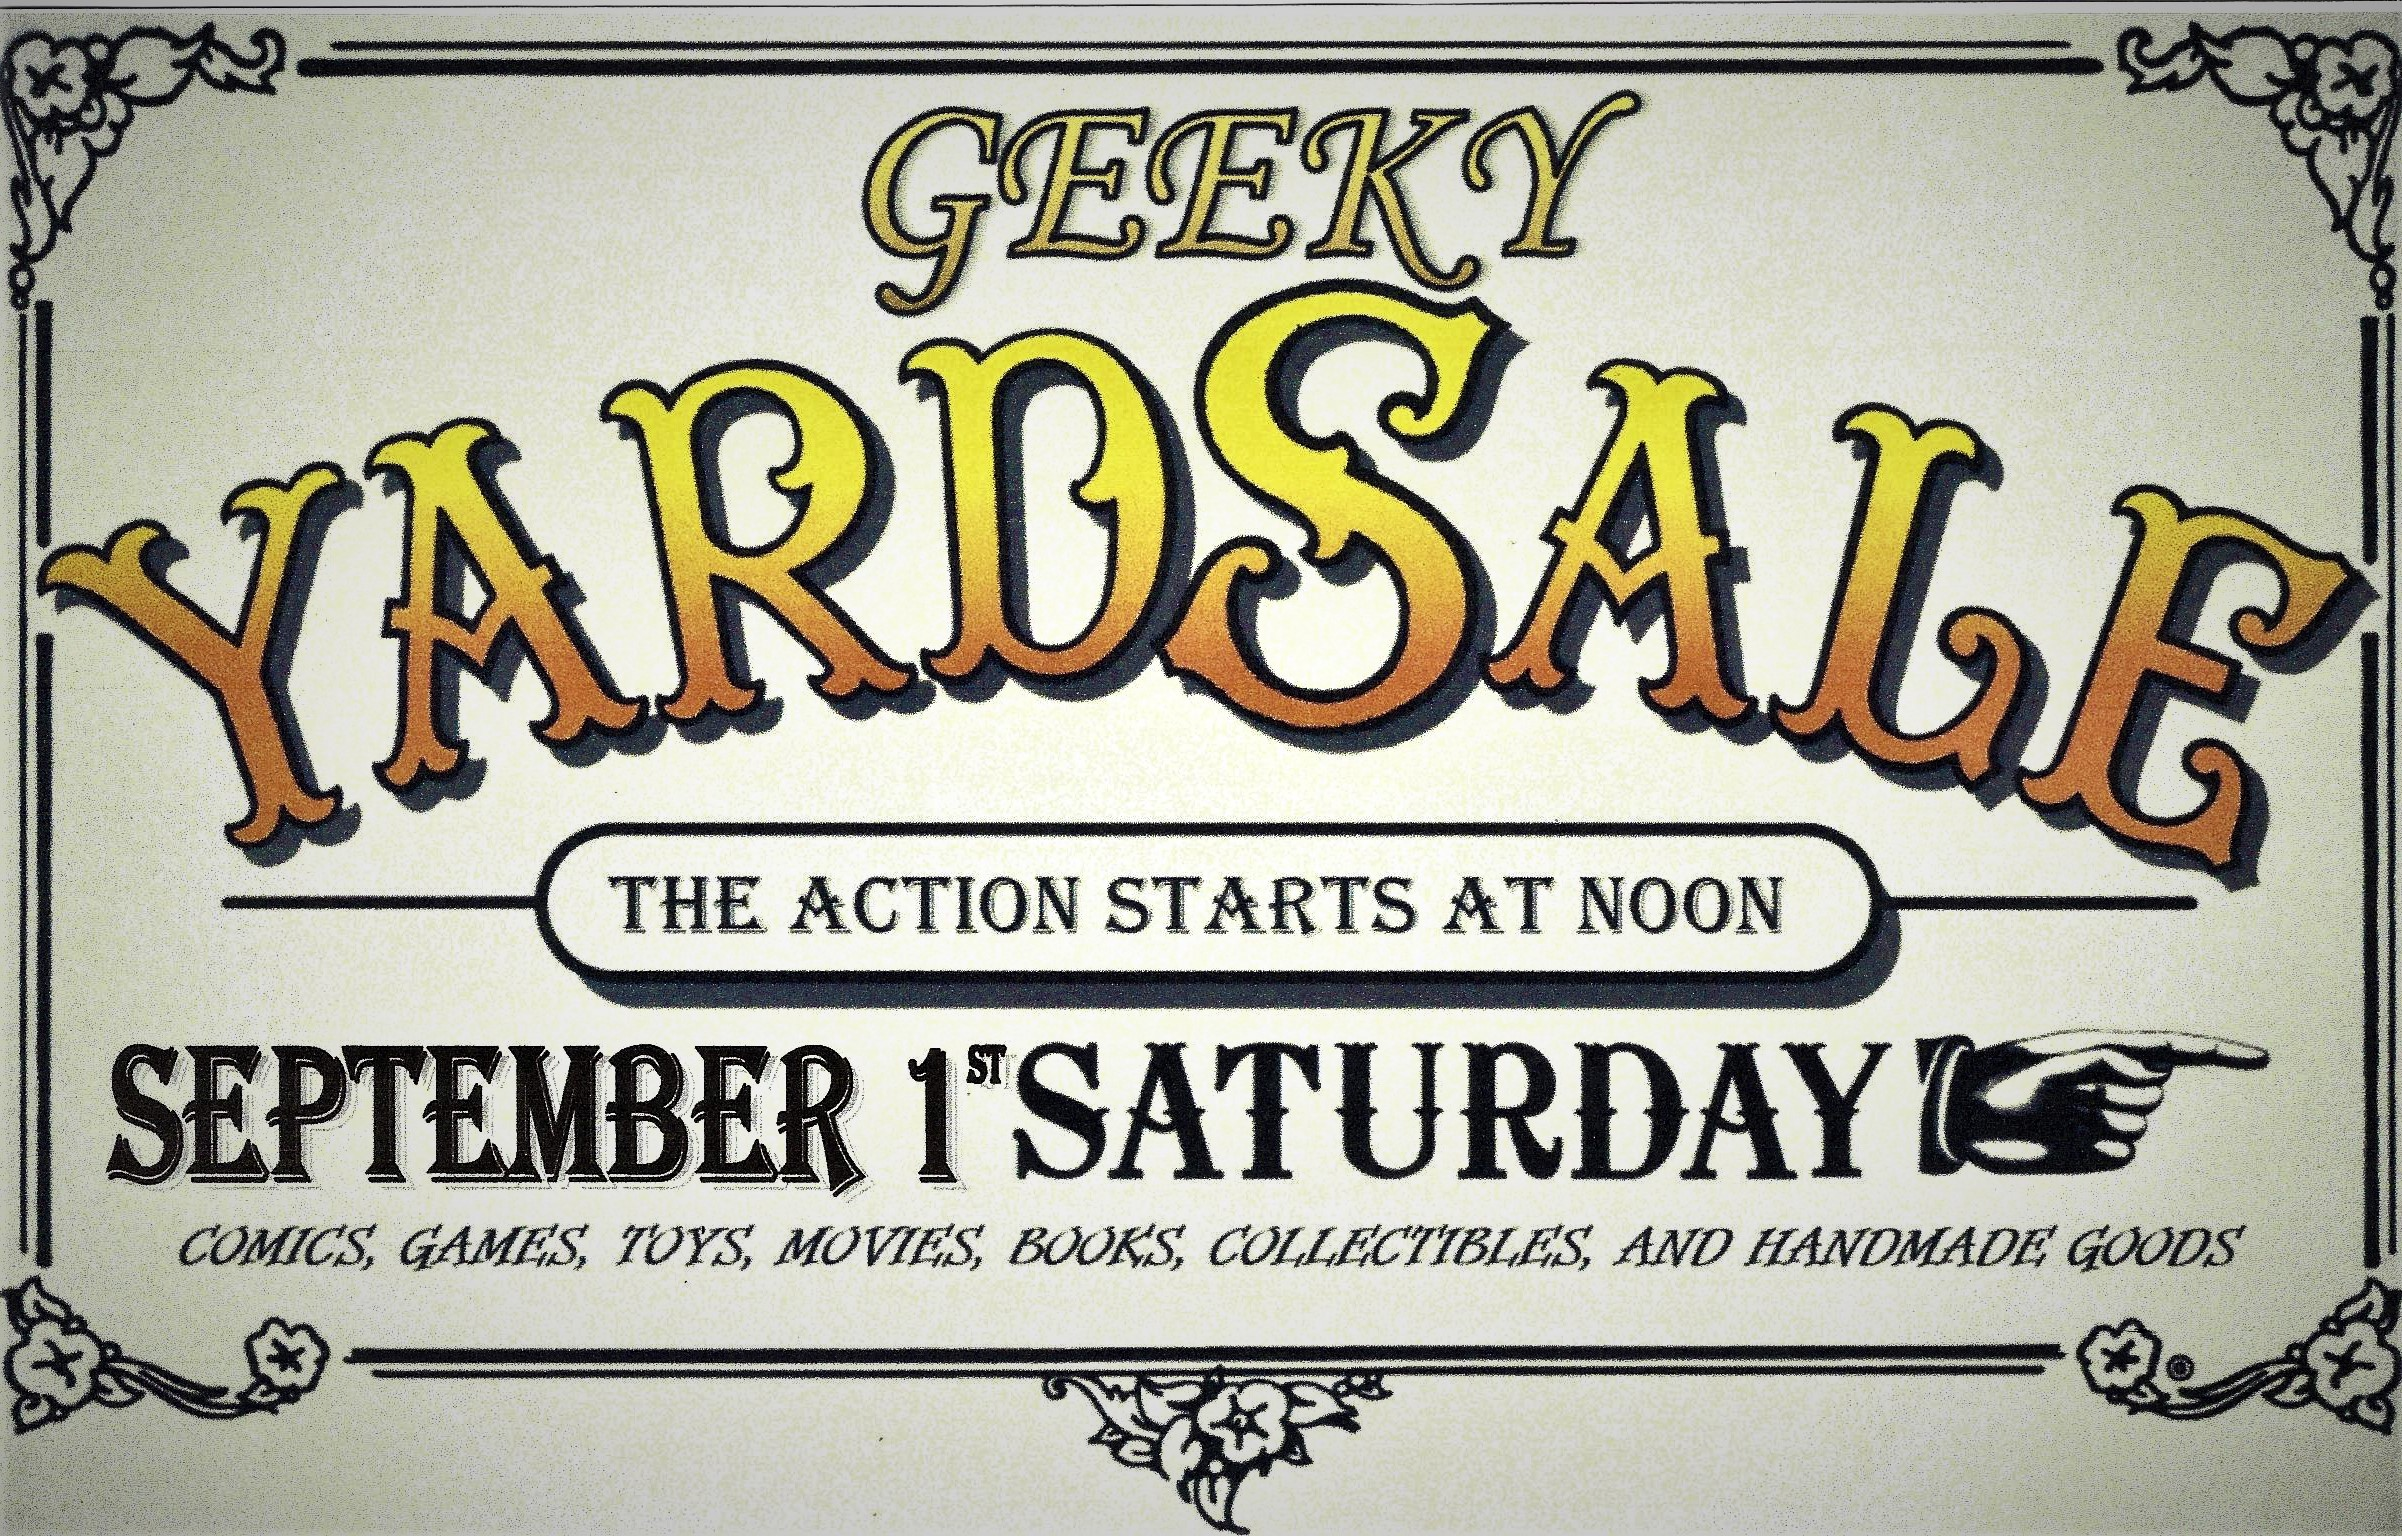 """The Geeky Yard Sale is Saturday, September 1st from 12:00 PM until 6:00 PM at the St. Charles Location!  Do you have stuff to sell? This is the perfect opportunity to get rid of your comics, games, statues, miniatures, handmade goods and anything else related to Geeky material. Just come into the Shop to pick up a Vendor Application or print one off and turn it in! You can find the application on our """"Geeky Yard Sale Application Sign Up"""" event. Applications are due August 19th, and the vendor list will be announced August 20th!  Not wanting to sell? Can't part ways with your favorite collectibles? Then don't miss the chance to shop all the awesome merchandise everyone is bringing in!"""